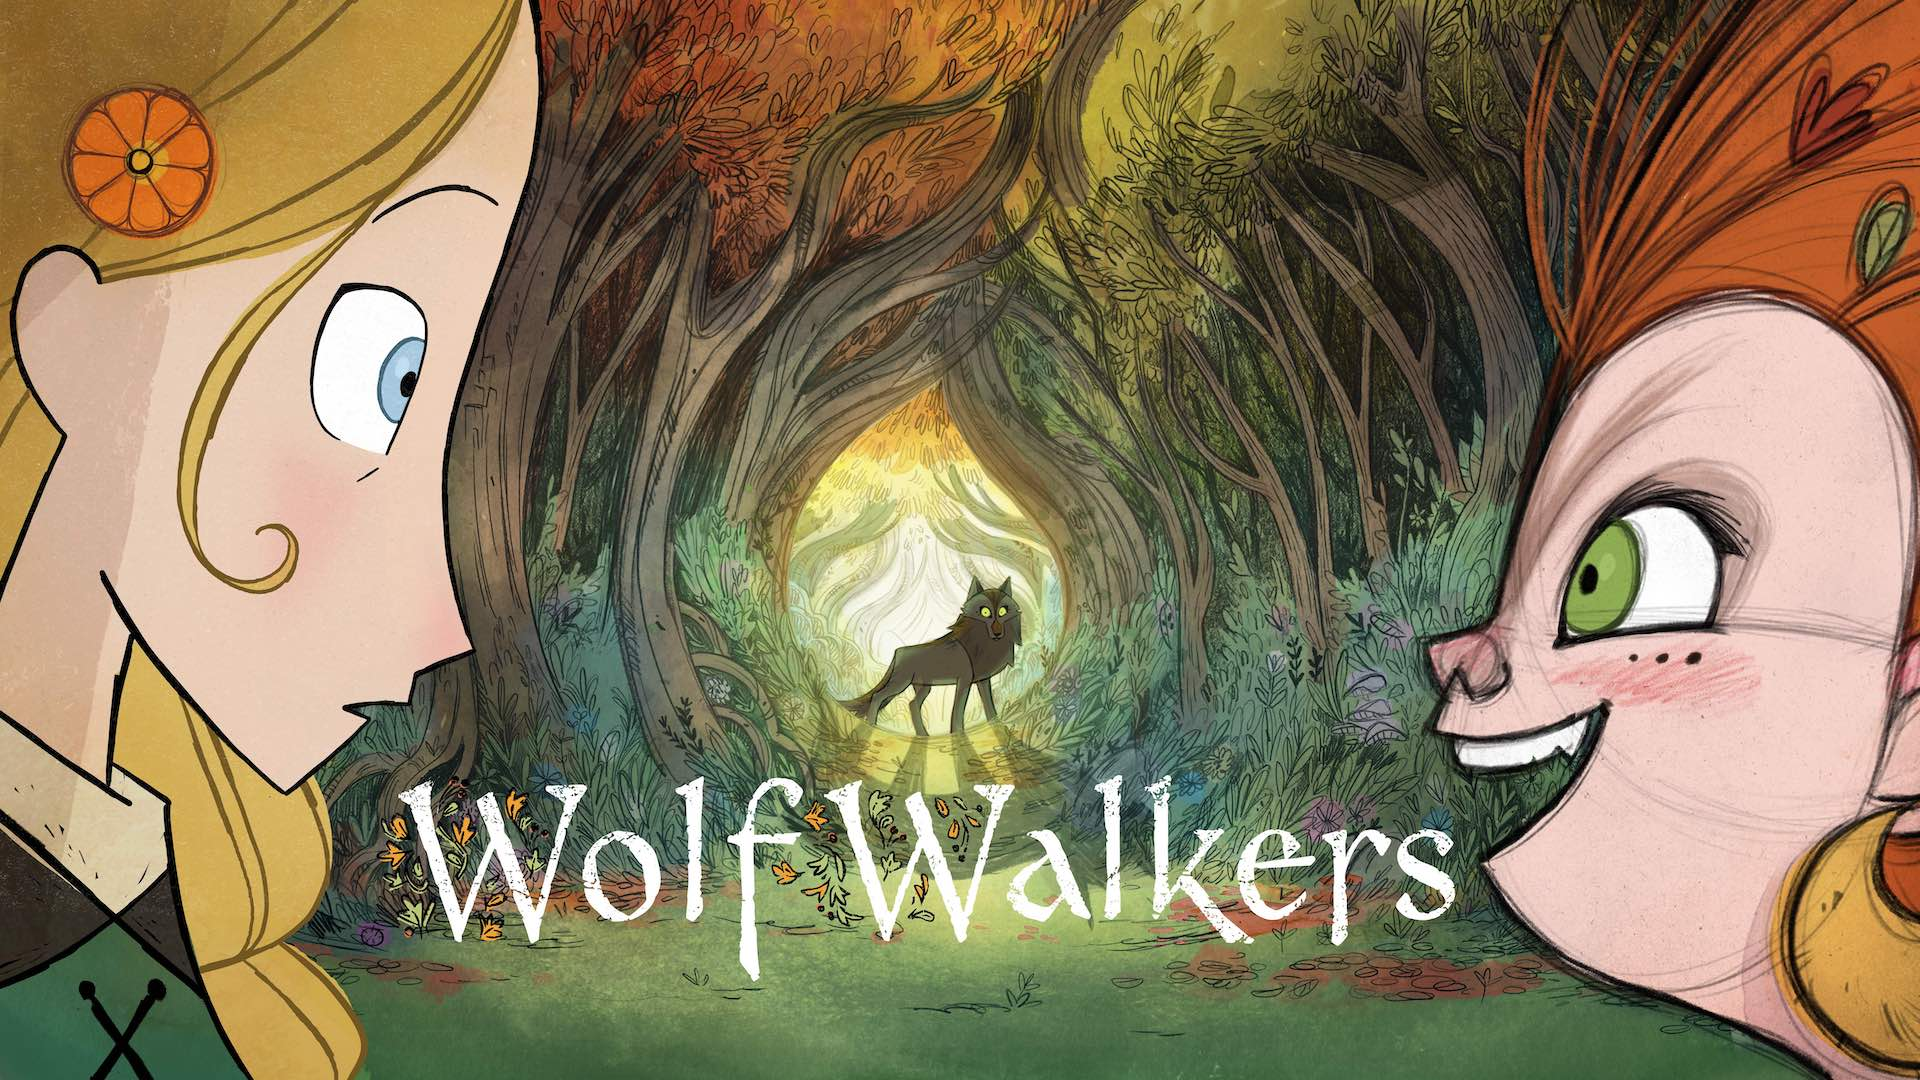 Wolfwalkers Speciale Analisi Stile e Forme